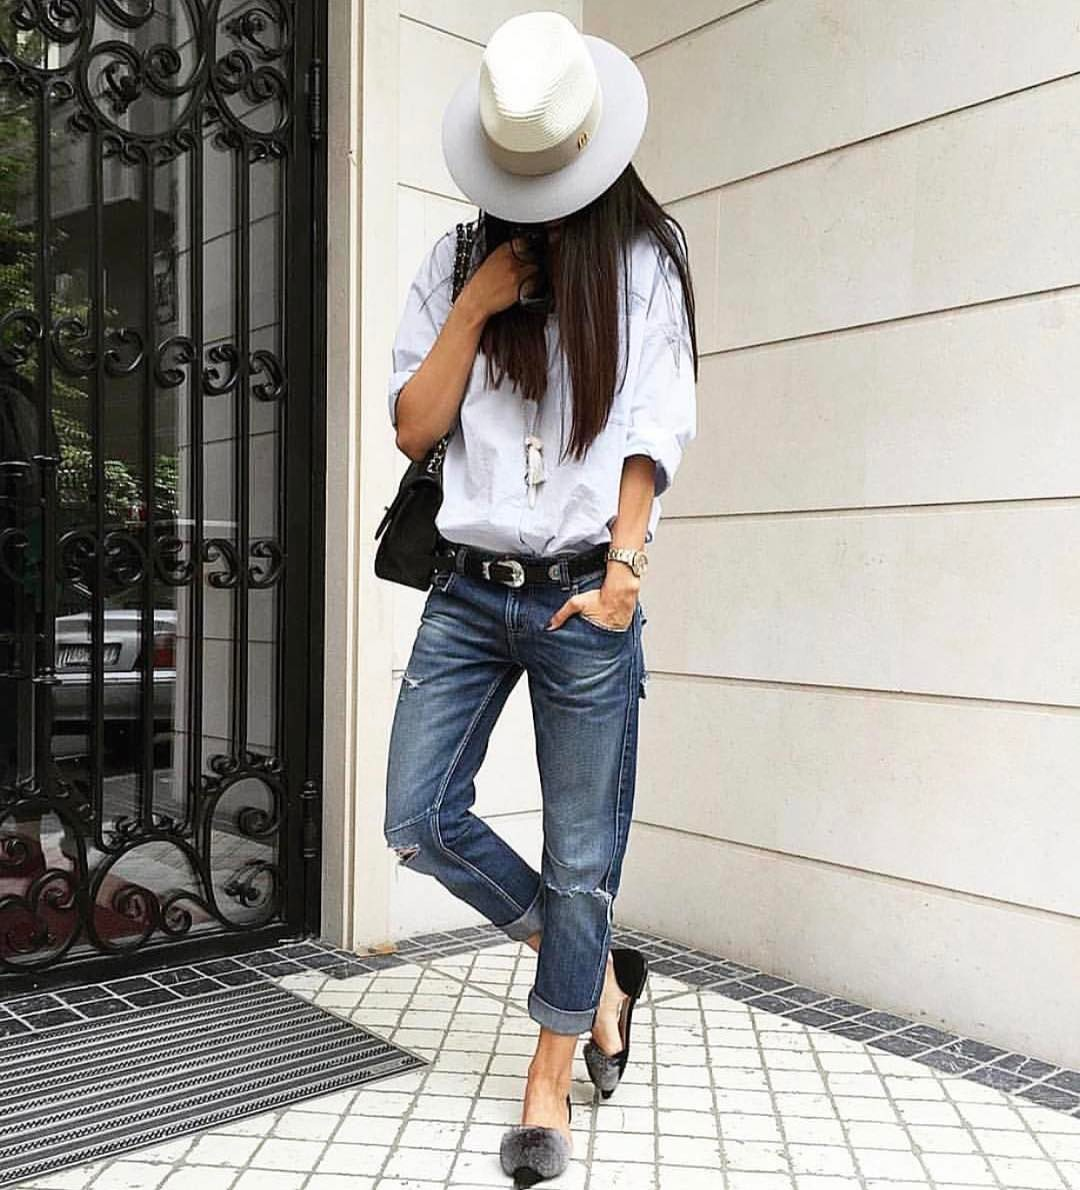 White Shirt With Cuffed Jeans And Fur Flat Pumps: Mannish OOTD 2020